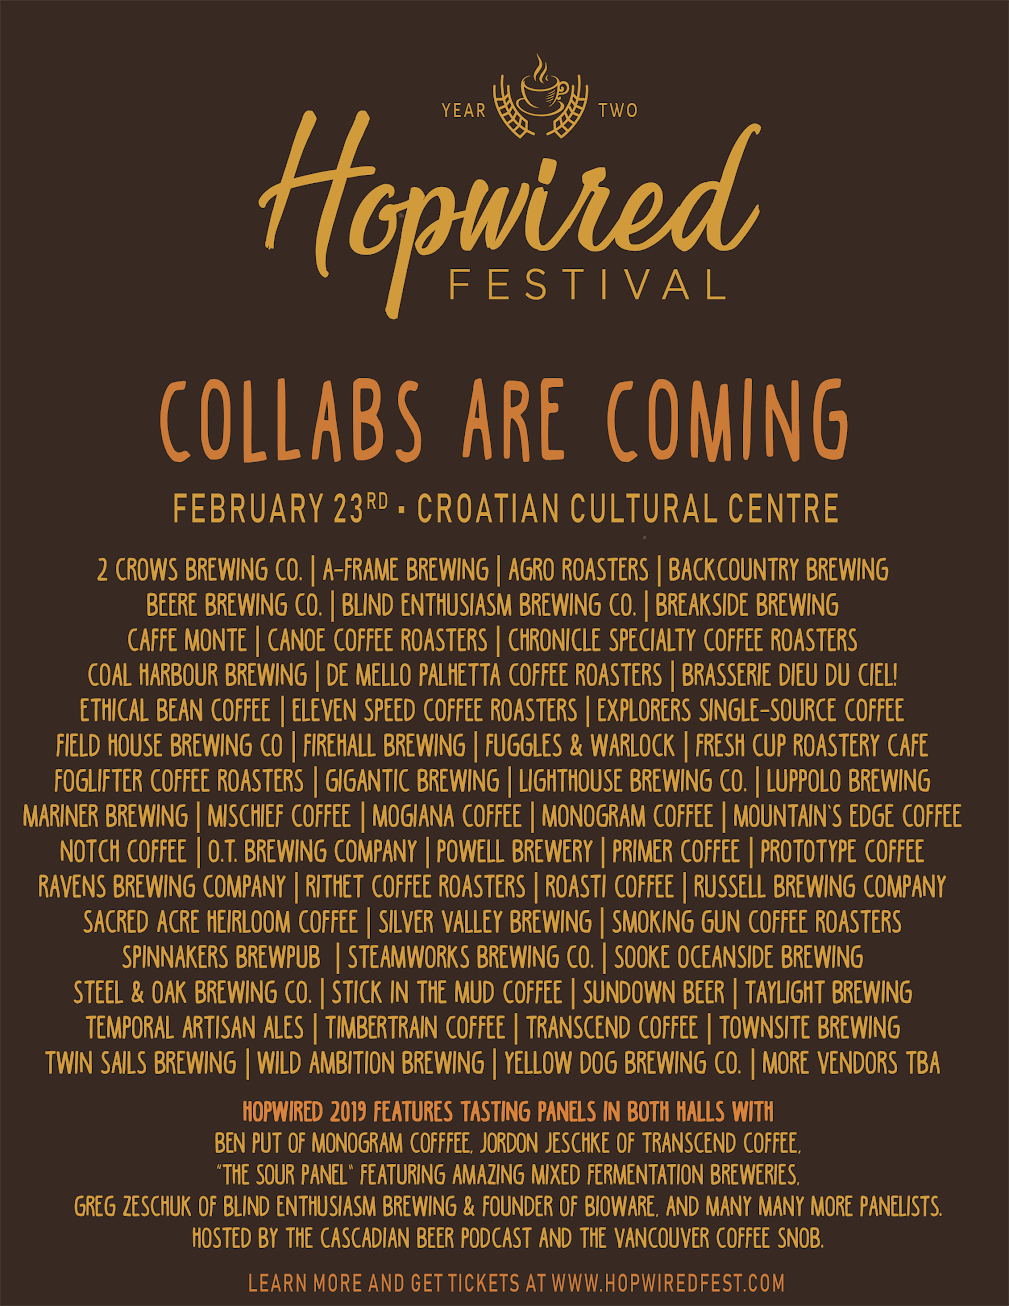 2019 Hopwired Festival